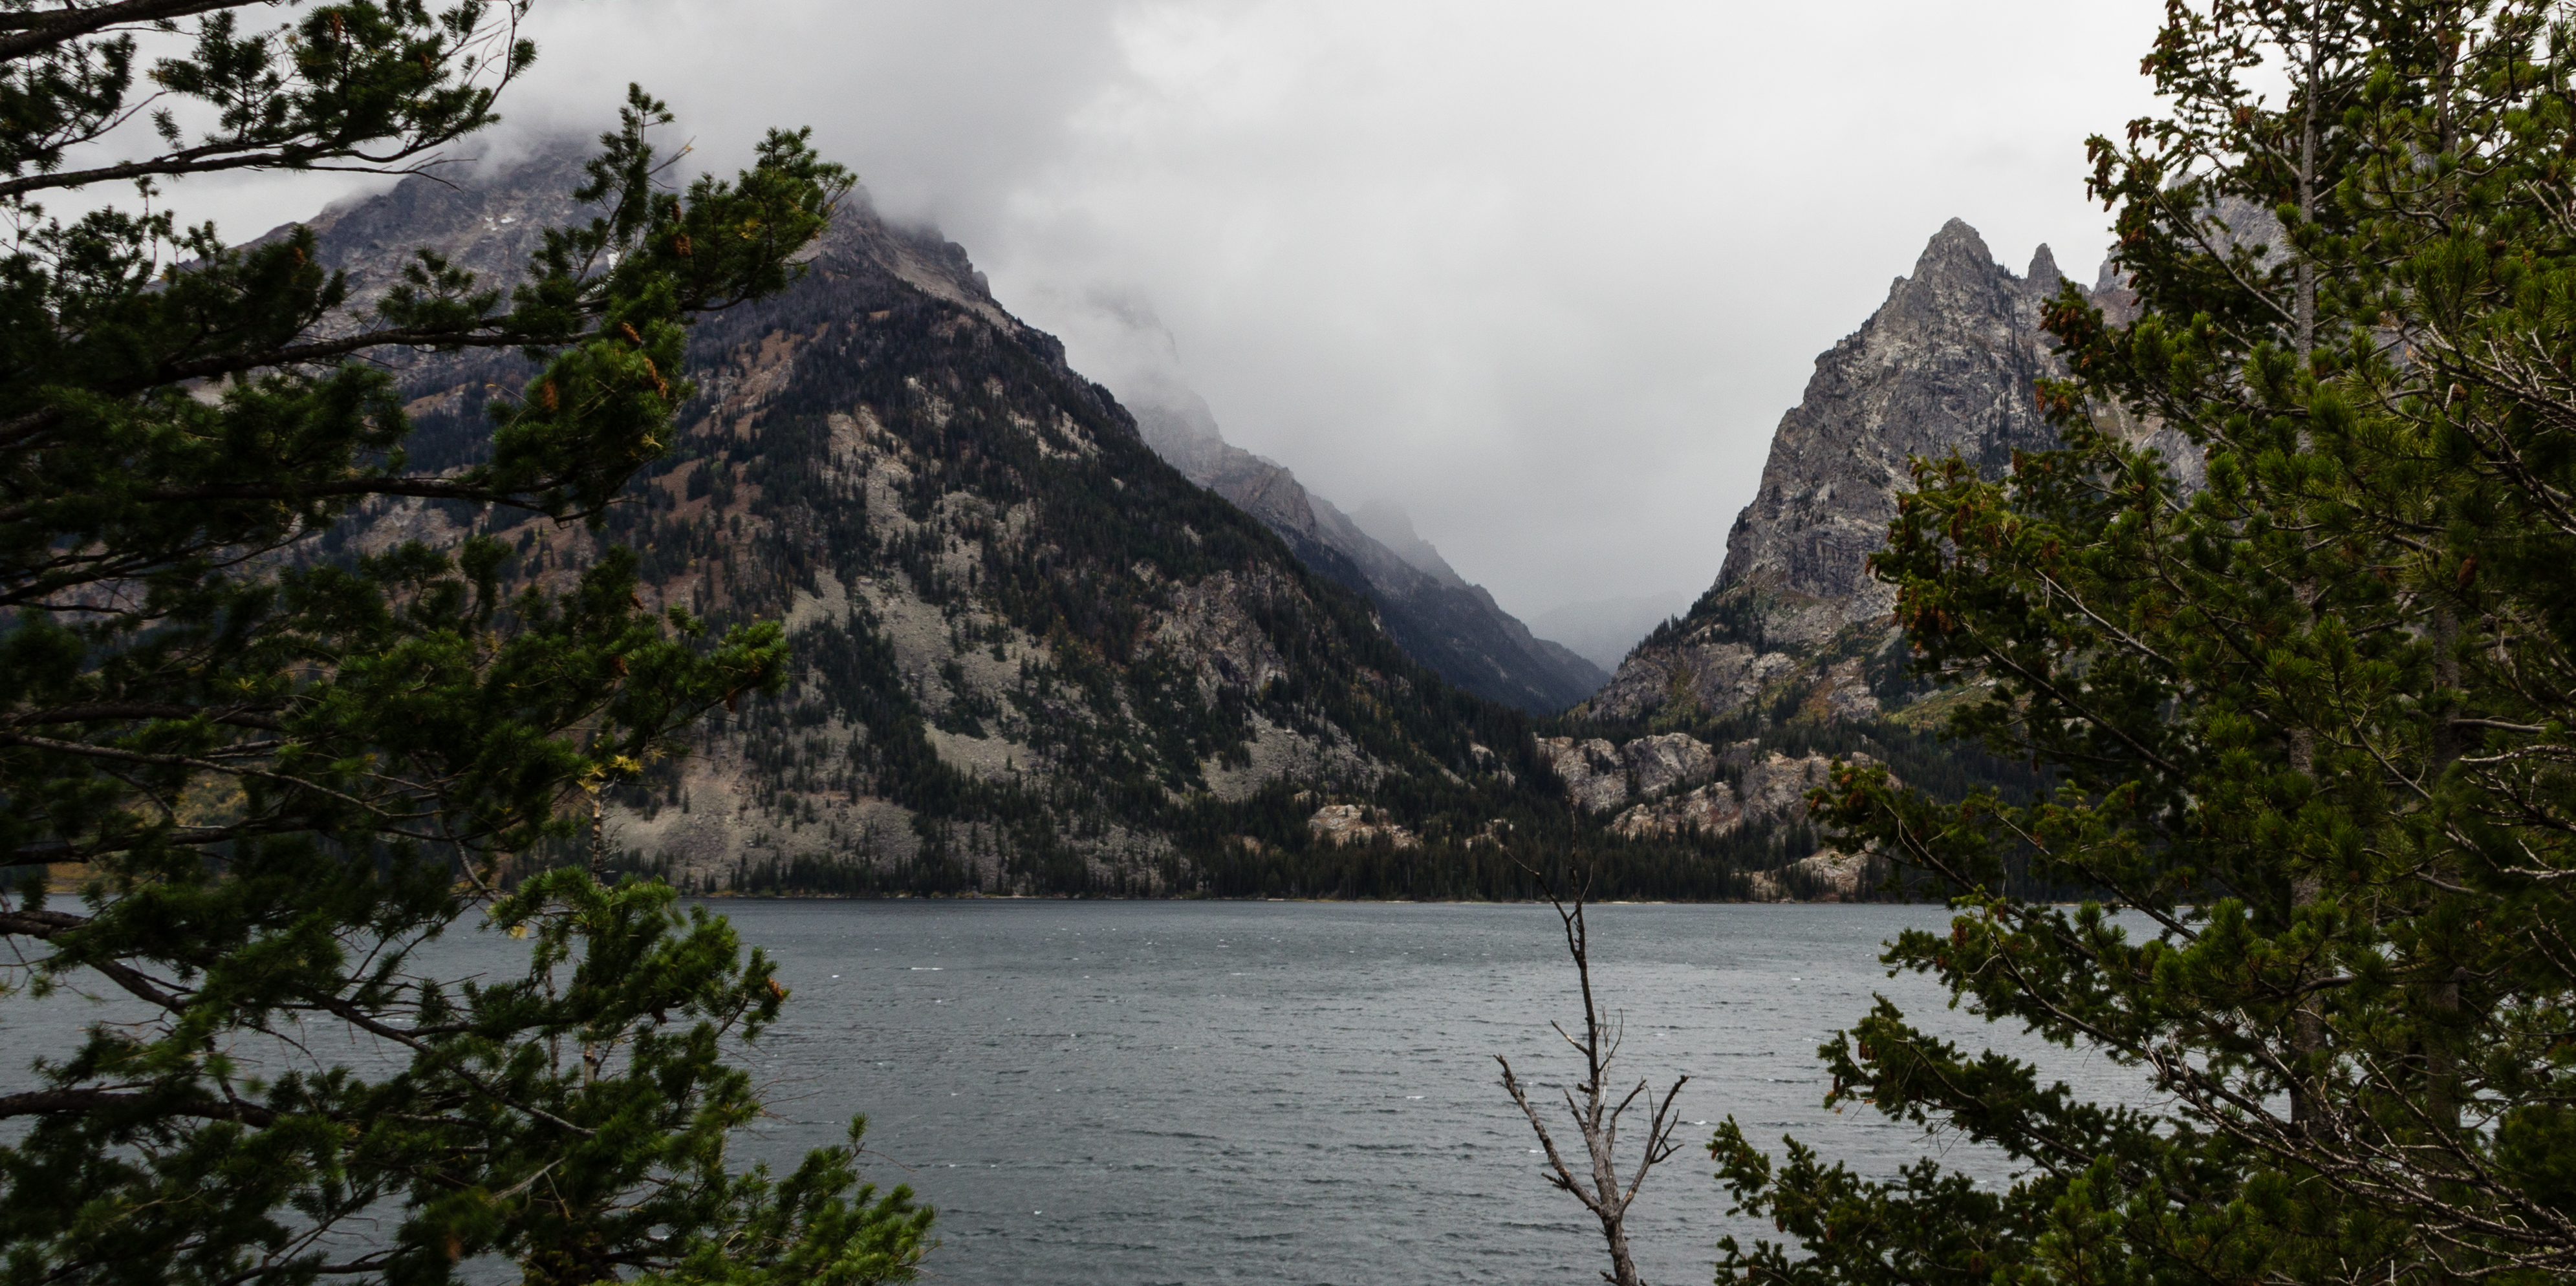 The storm is coming at Jenny Lake